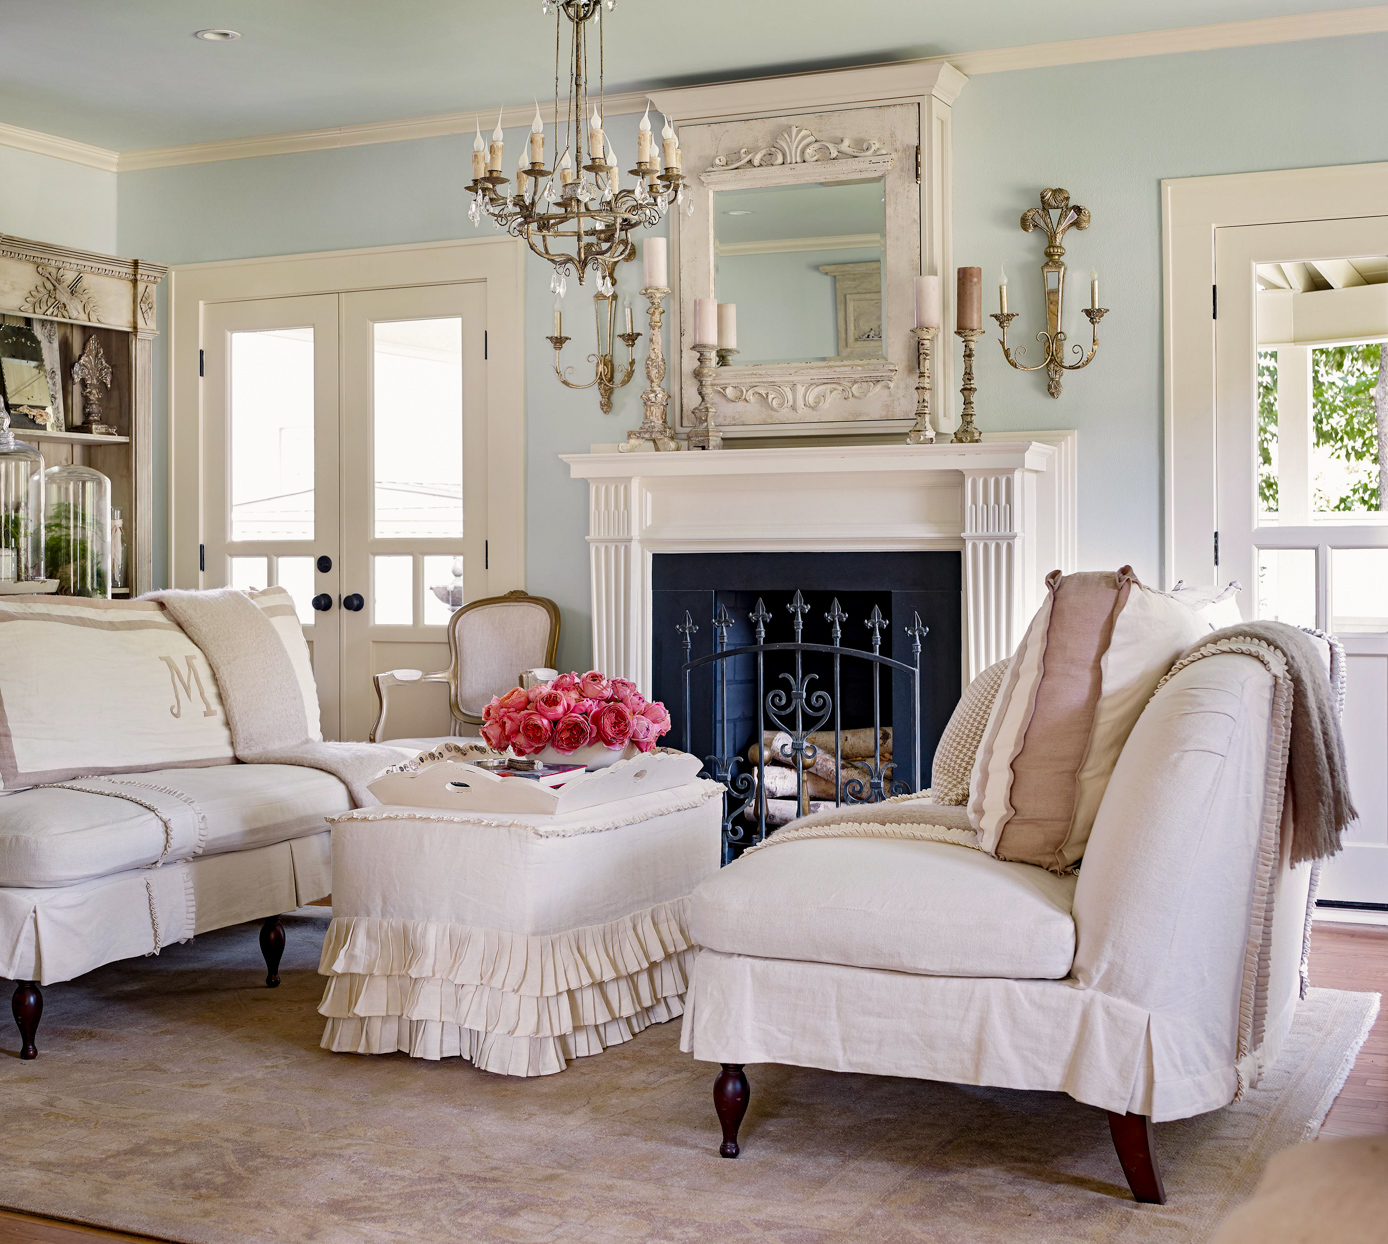 sitting room with elegant chandelier and wall sconces